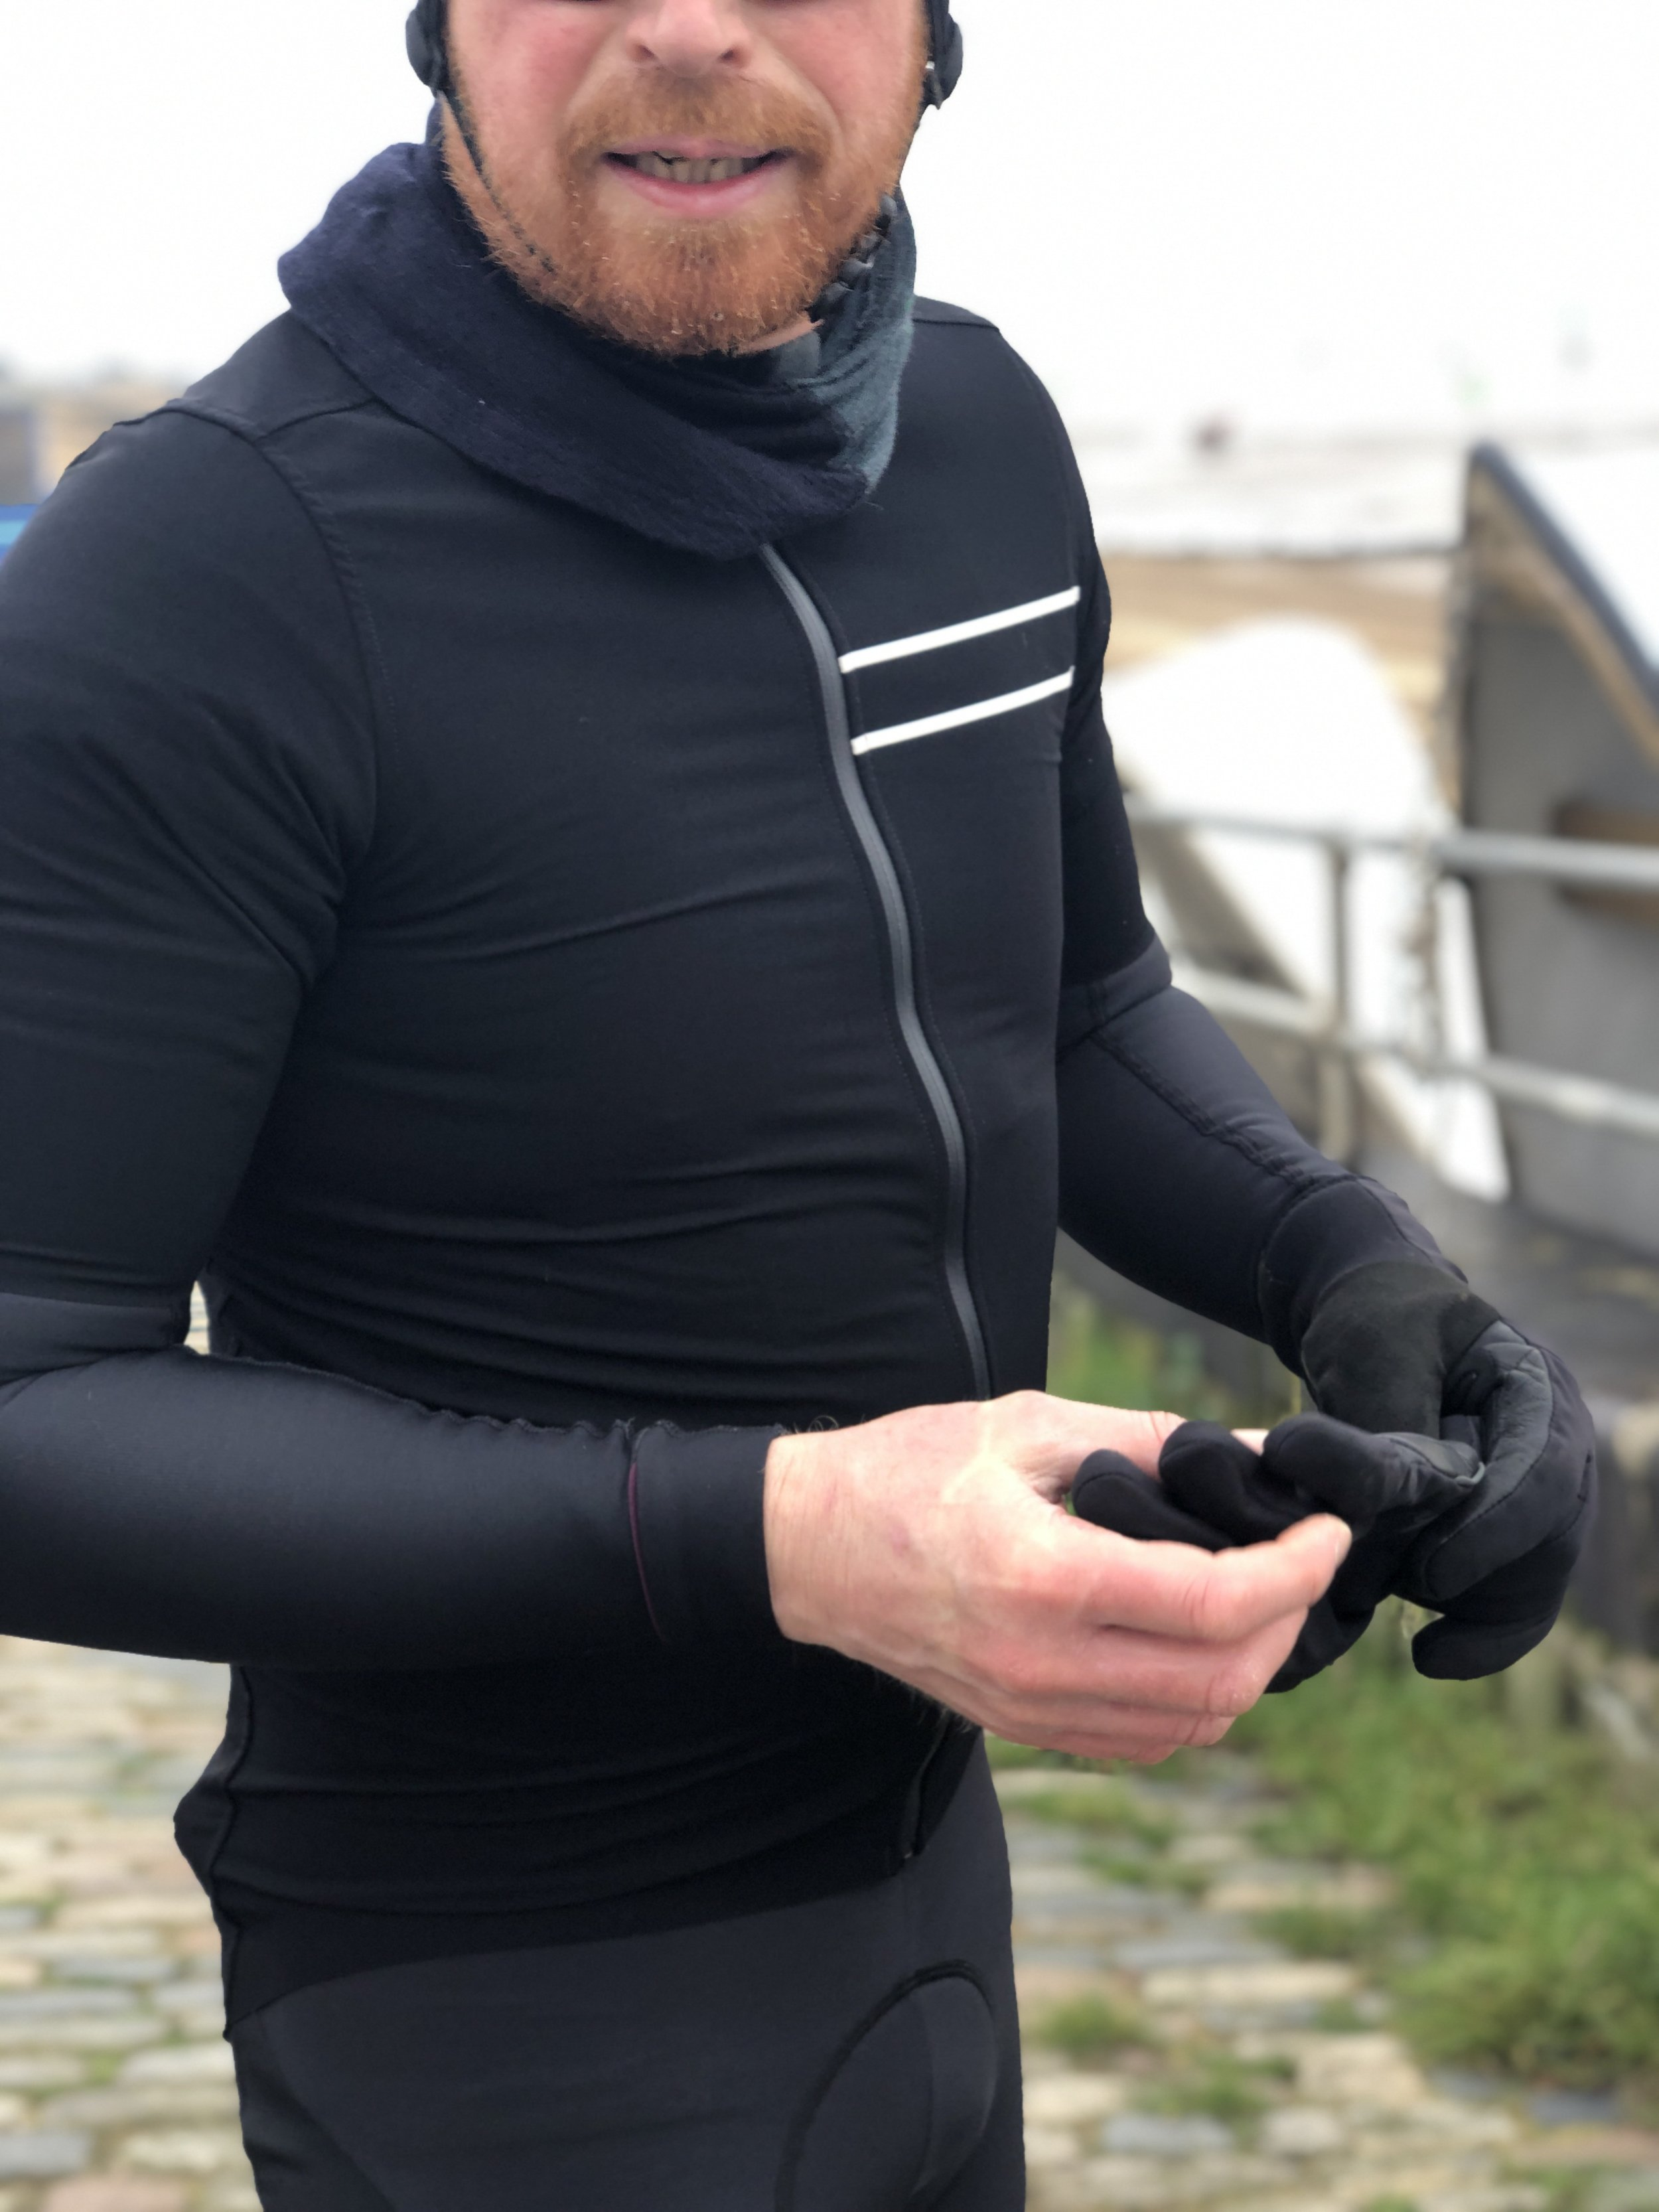 The jersey has a race fit so it's a good idea to size up if you're anything other than a skinny cyclist  Image: Jeremy Johnson